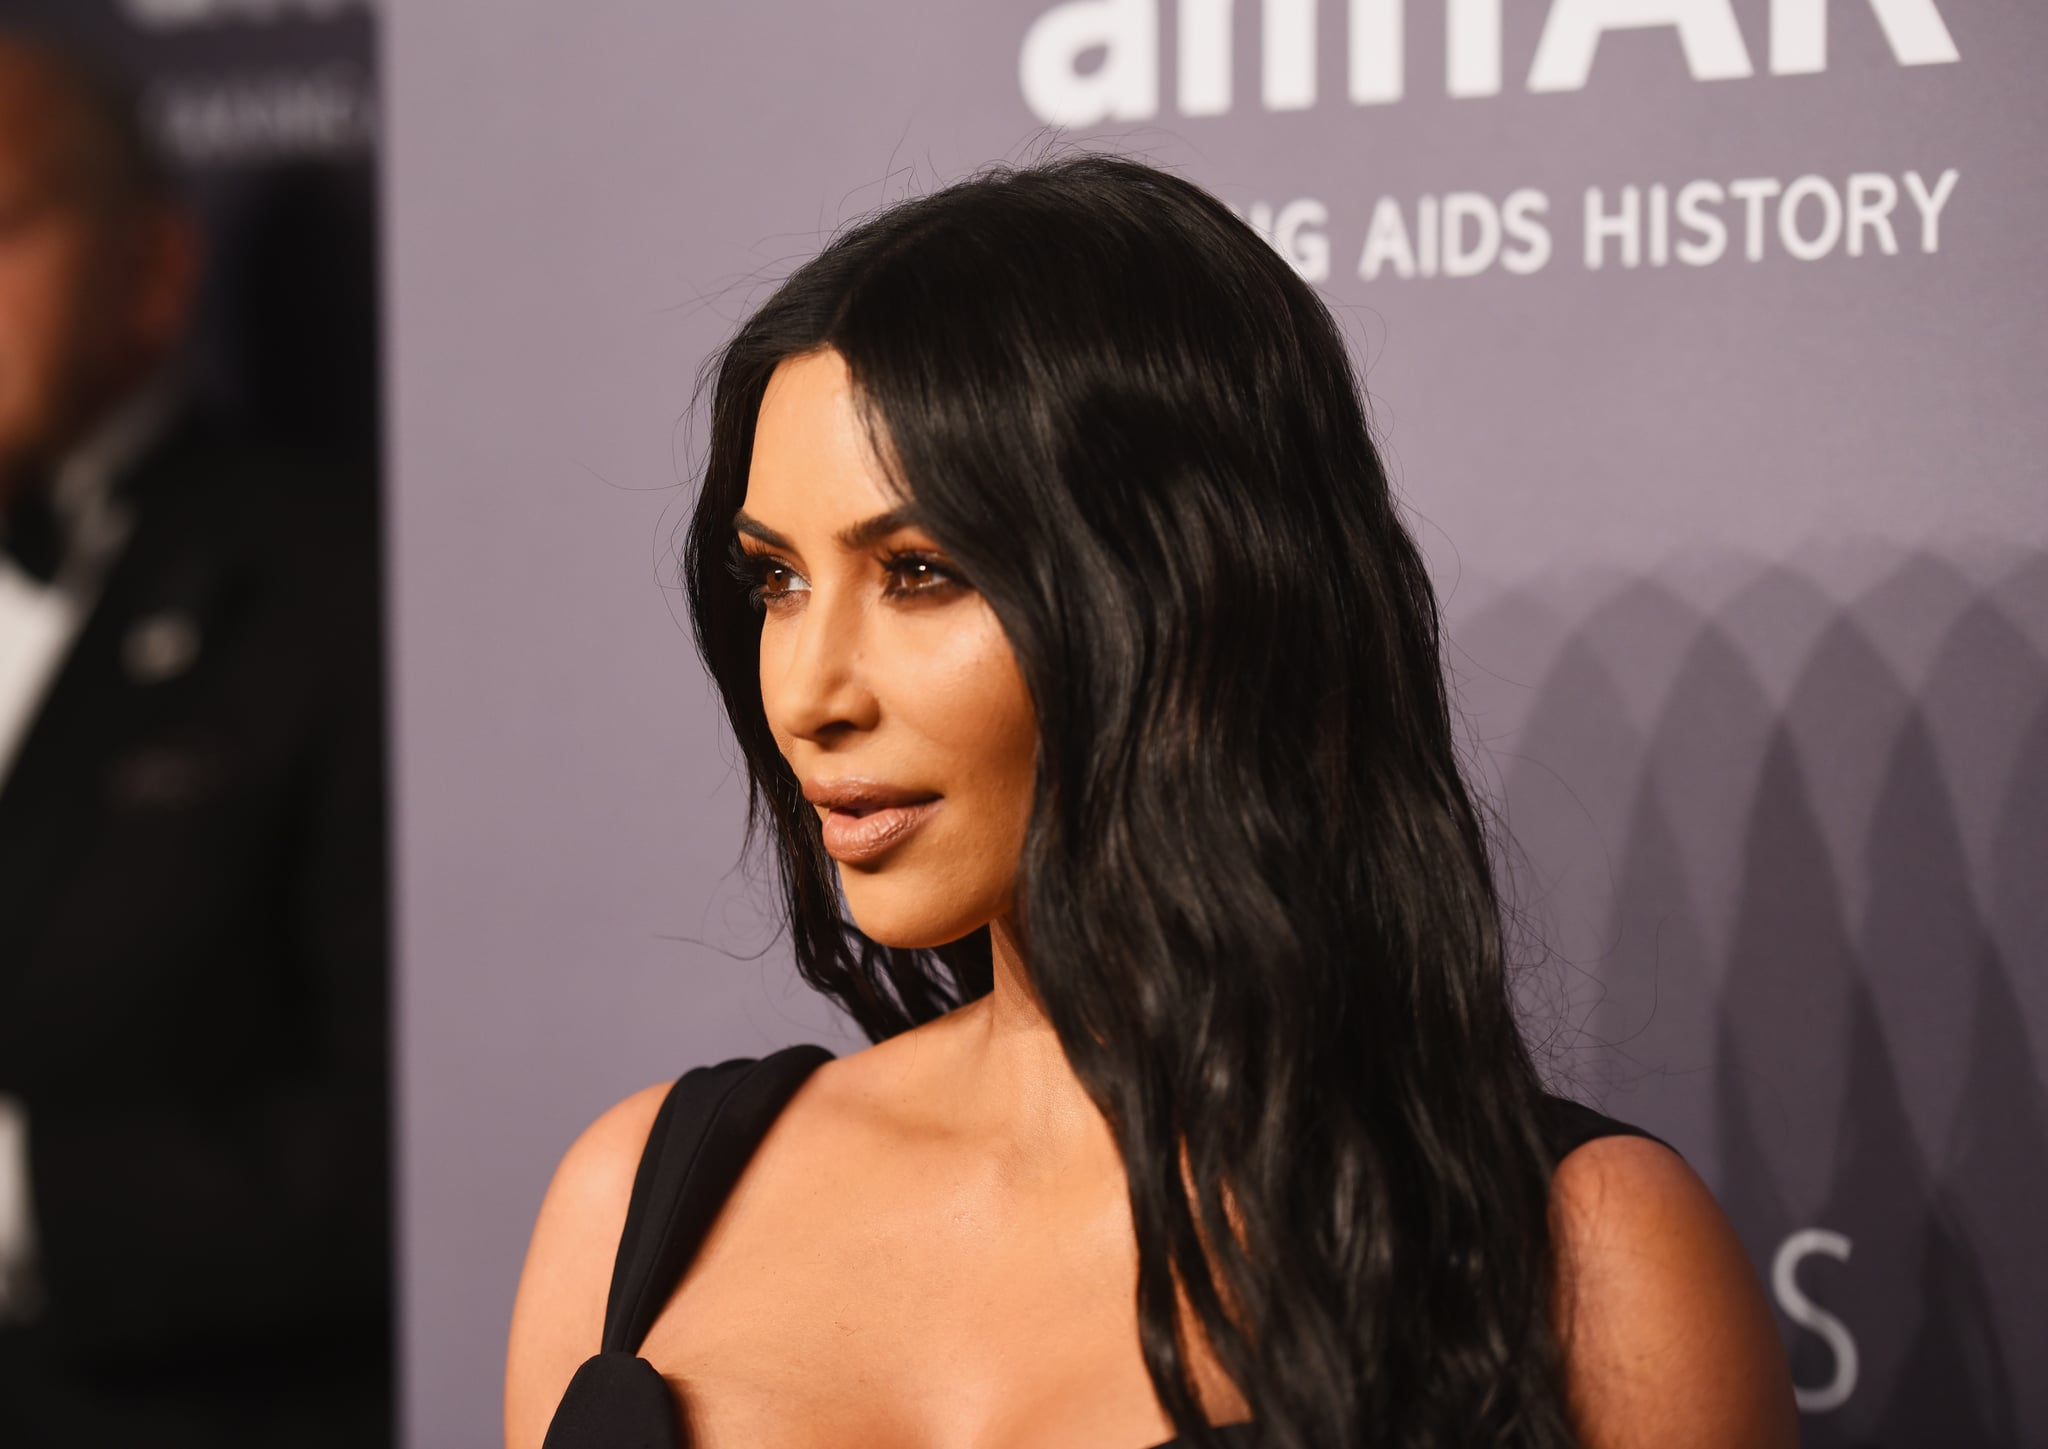 NEW YORK, NY - FEBRUARY 06:  Kim Kardashian West attends the amfAR New York Gala 2019 at Cipriani Wall Street on February 6, 2019 in New York City.  (Photo by Jared Siskin/amfAR/Getty Images)